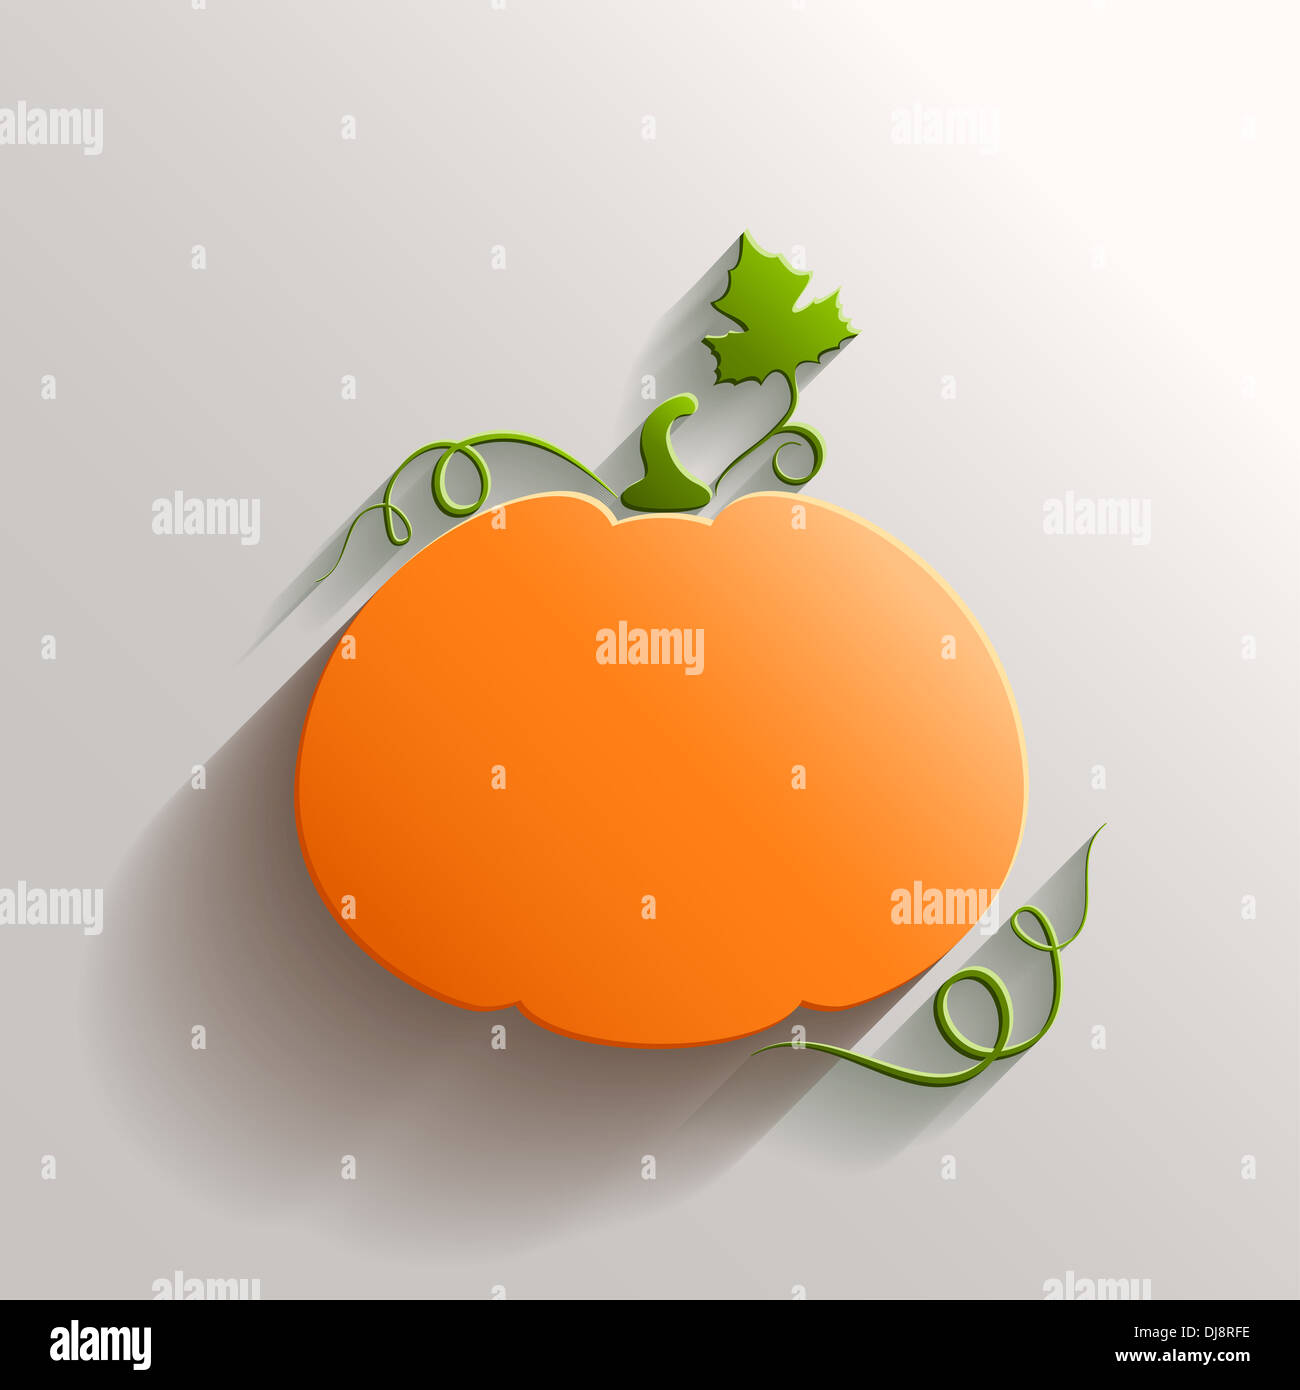 Happy Thanksgiving Design Stylized 3d Stock Photos Diagram Of A Pumpkin Abstract With Long Shadow Over White Background Image